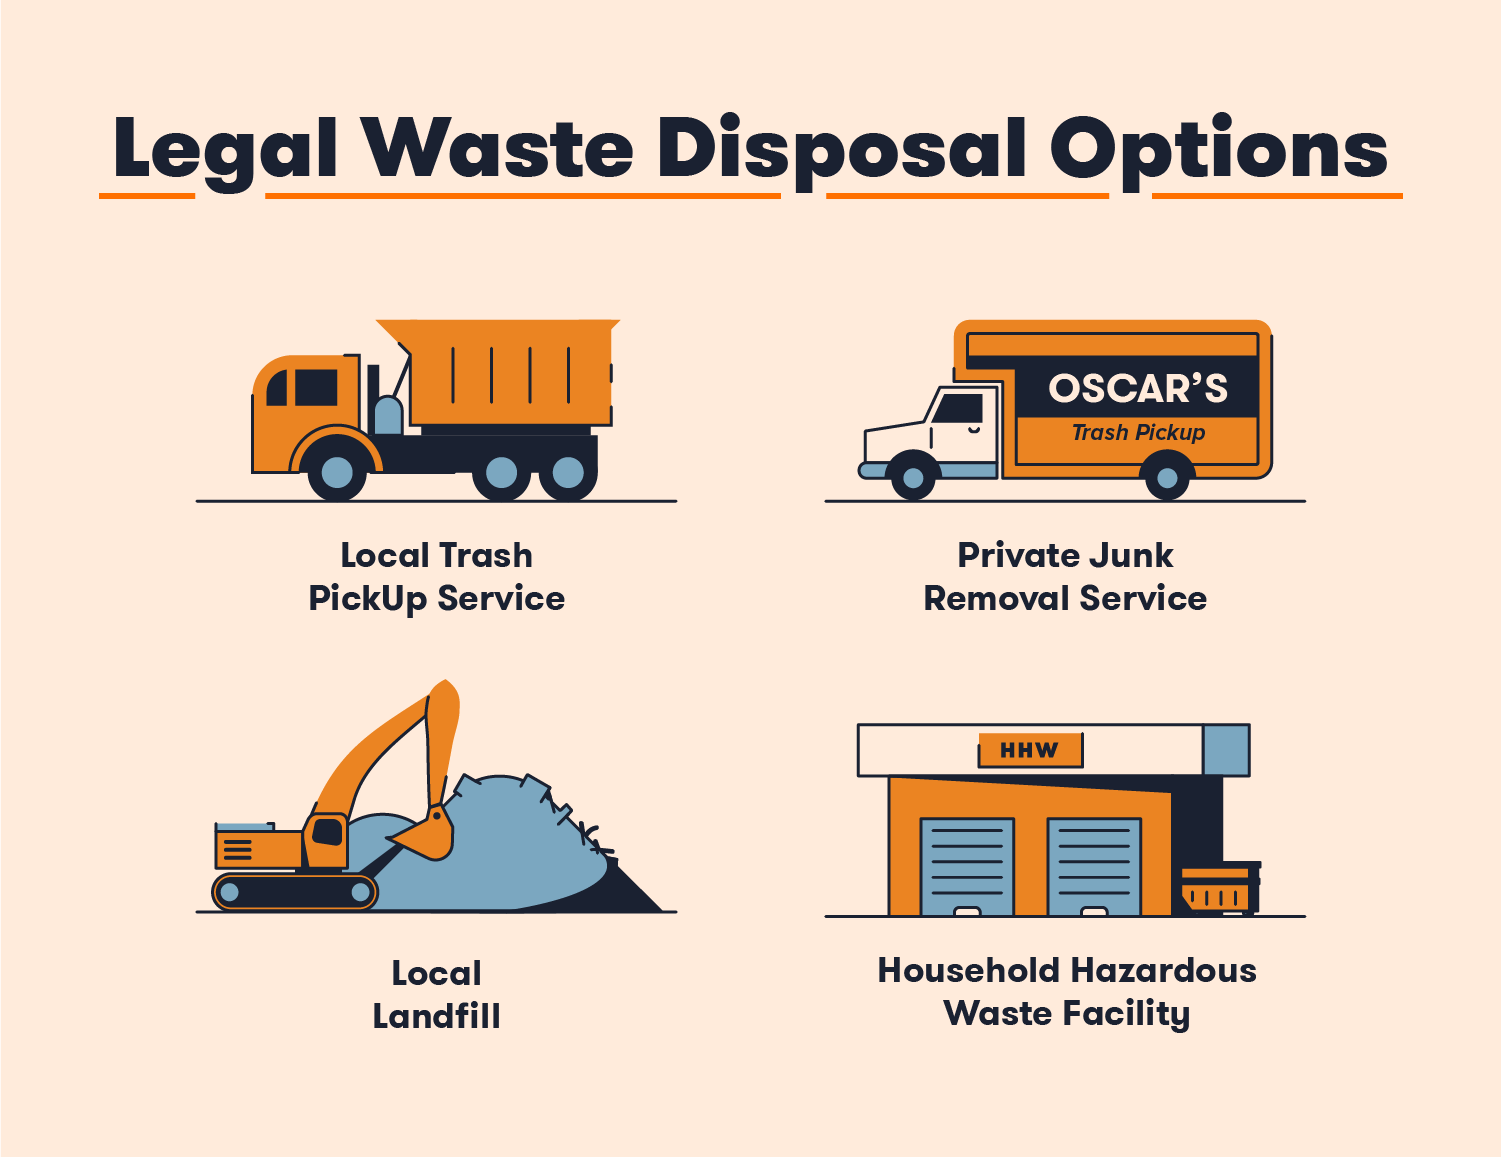 Legal Waste Disposal Options